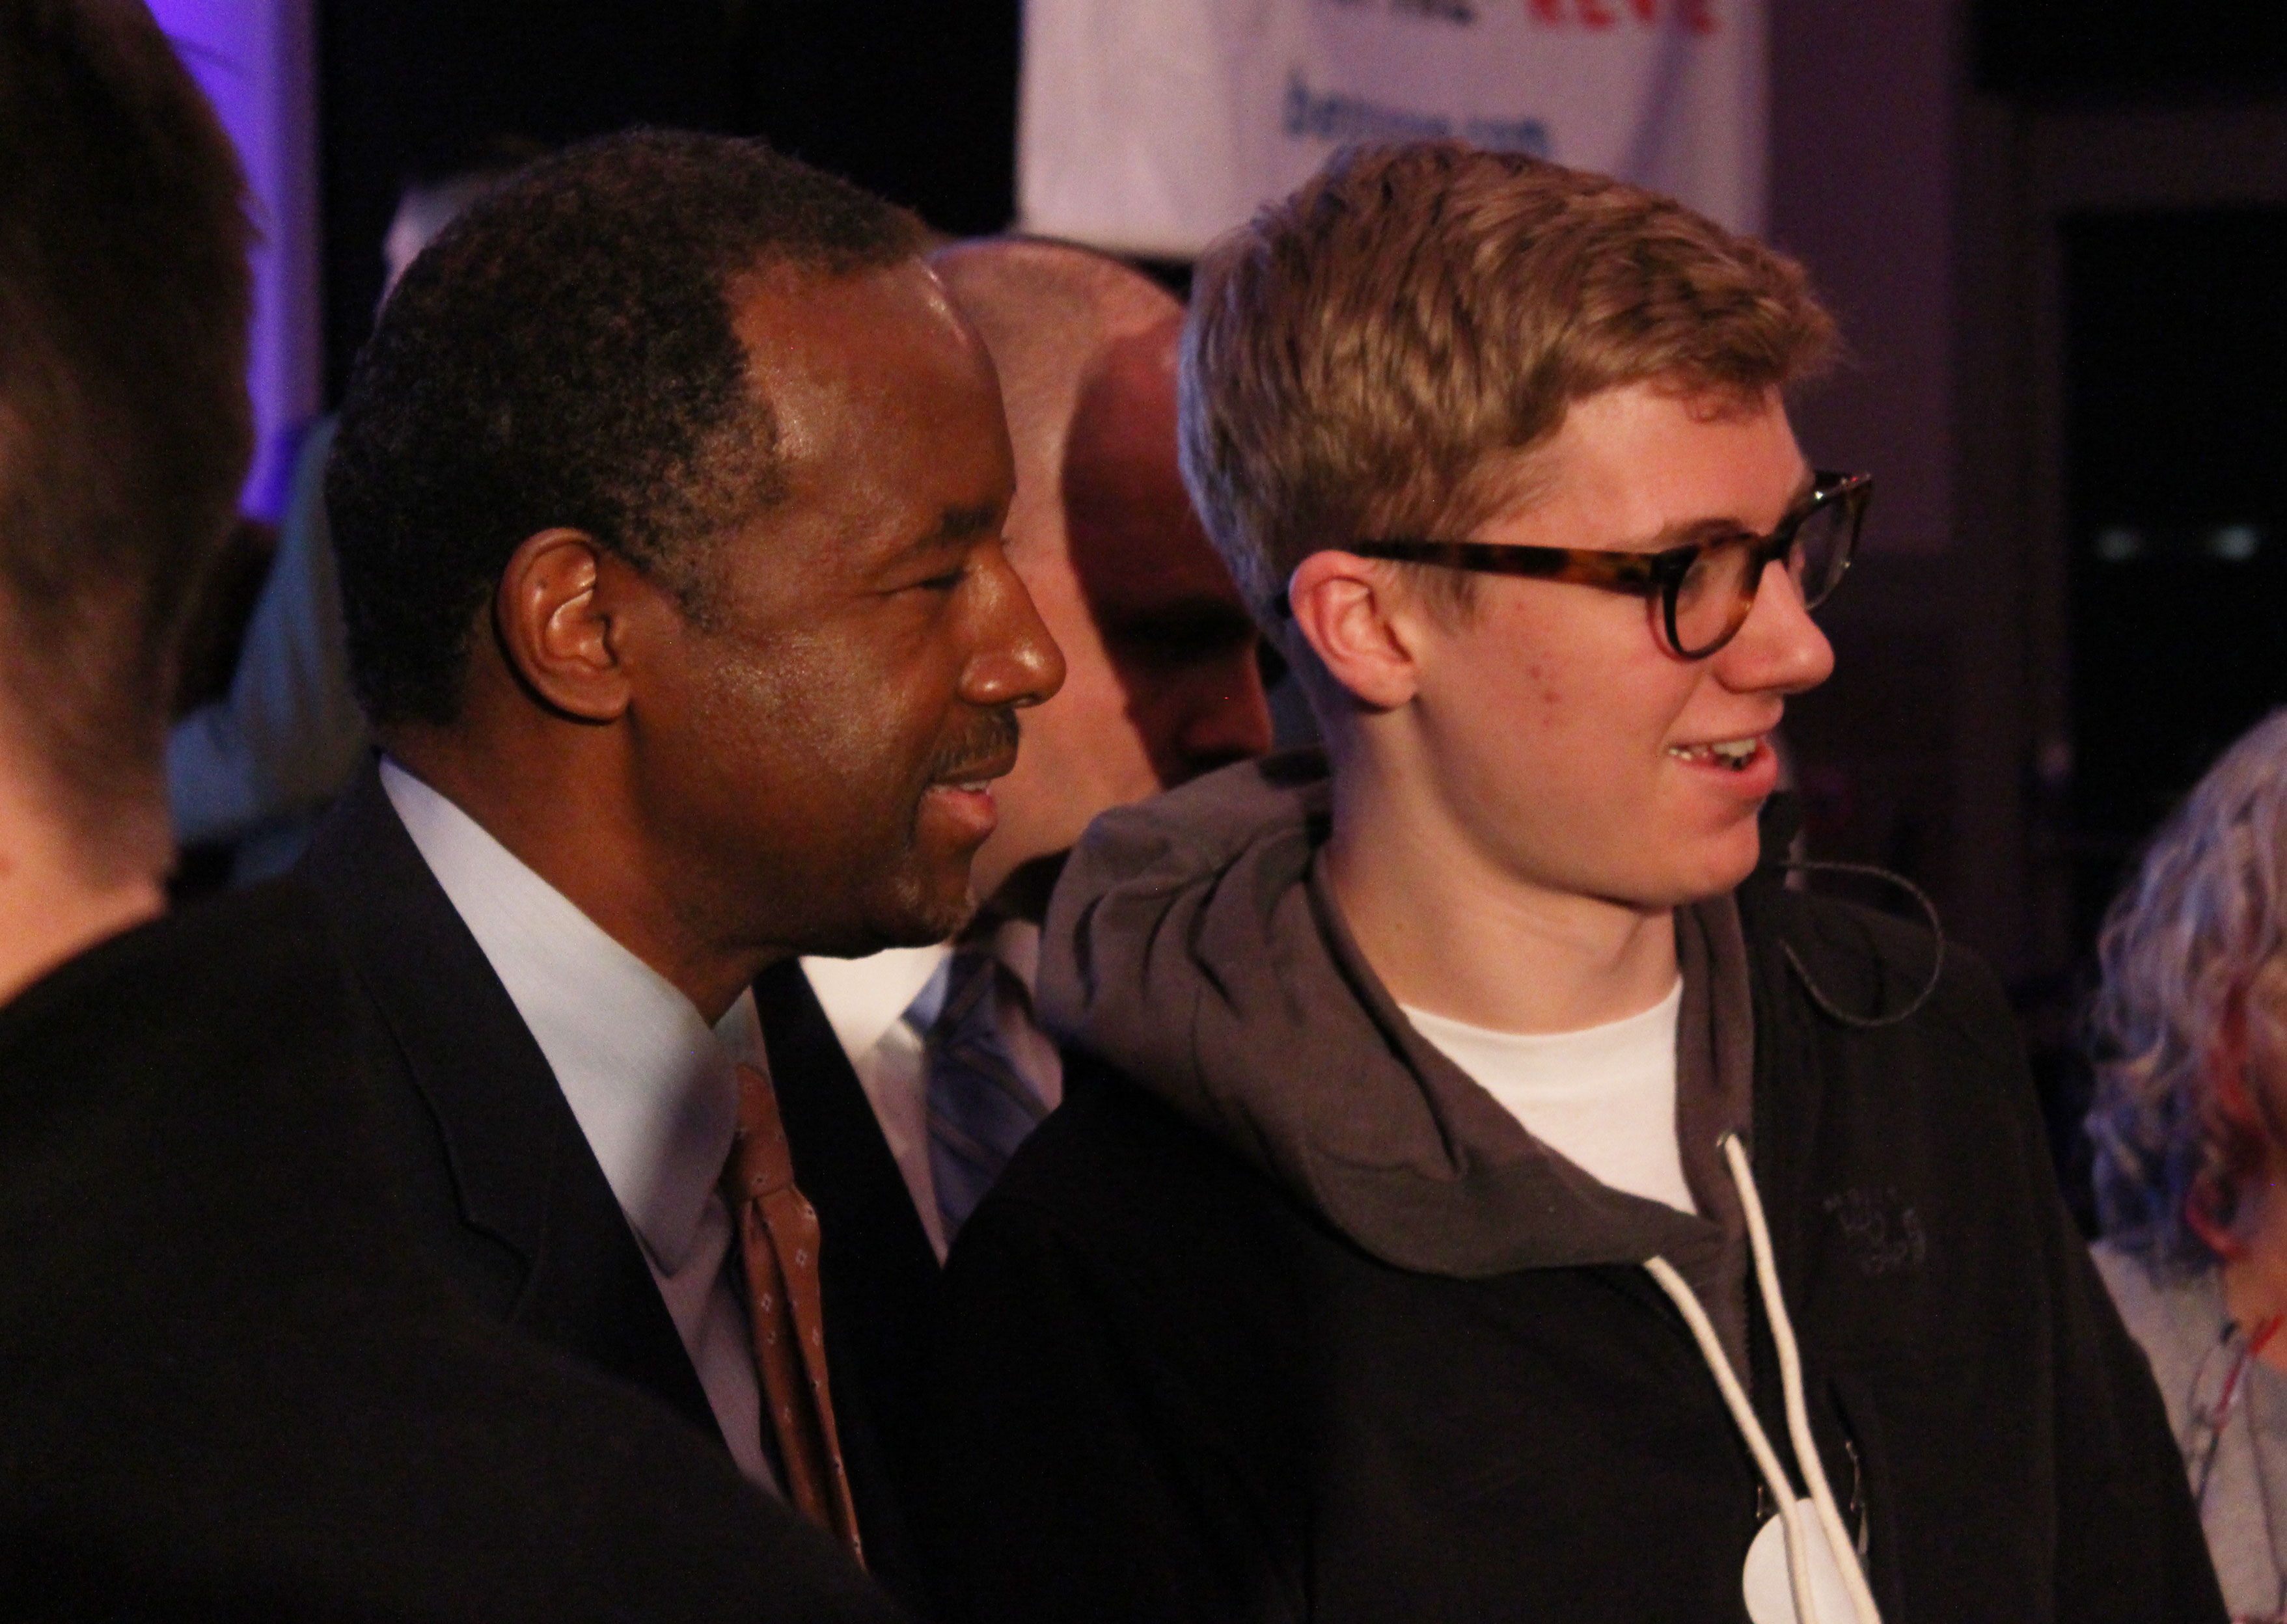 Ben Carson (left) poses for a photo with a young fan. Jonah McKeown/TMN Digital